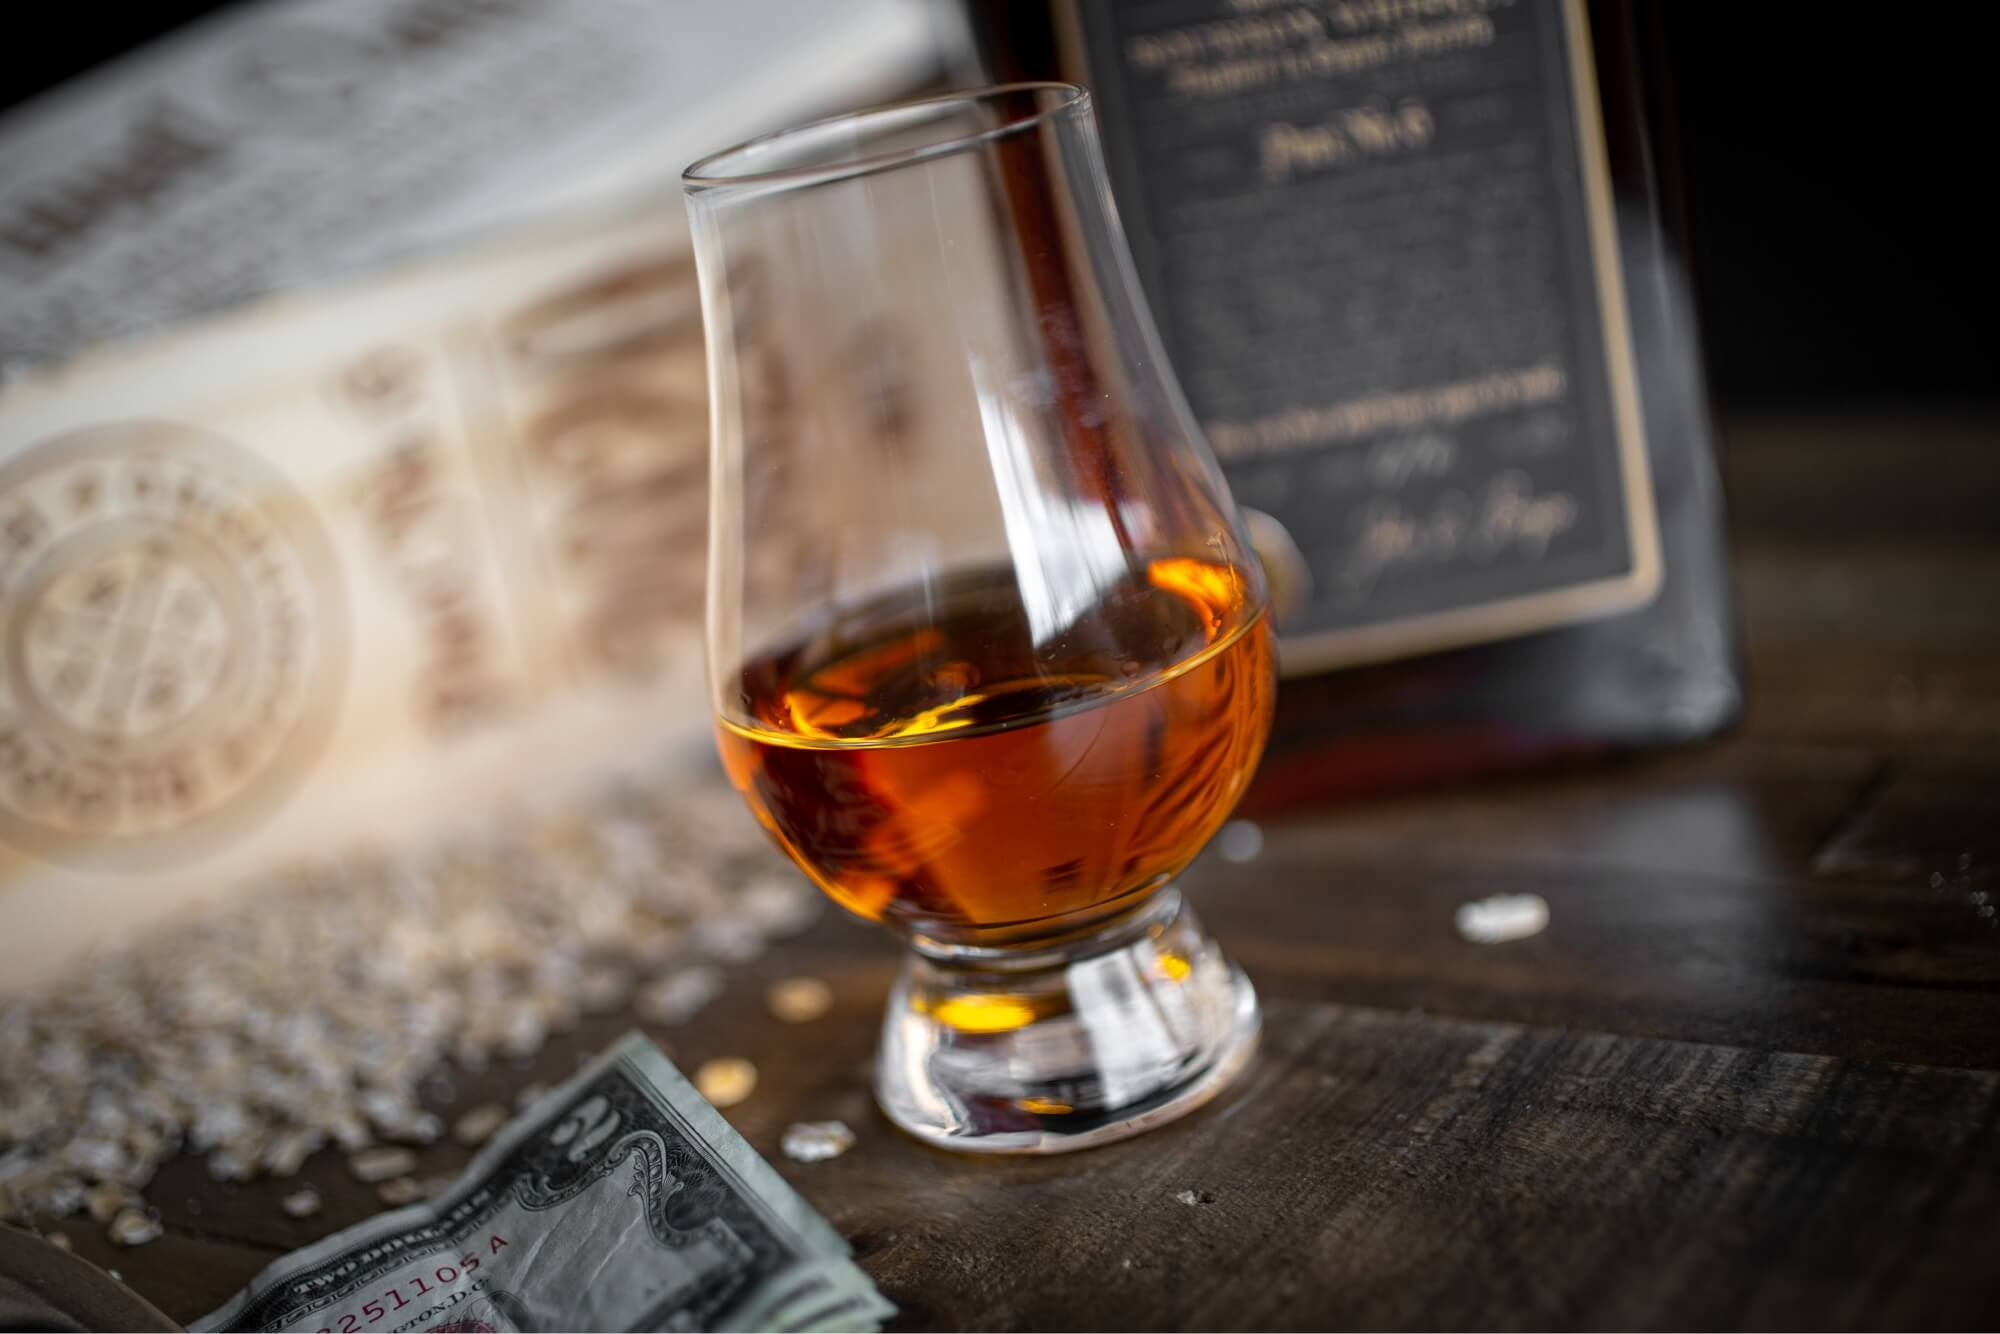 A photo of a shot of whiskey.